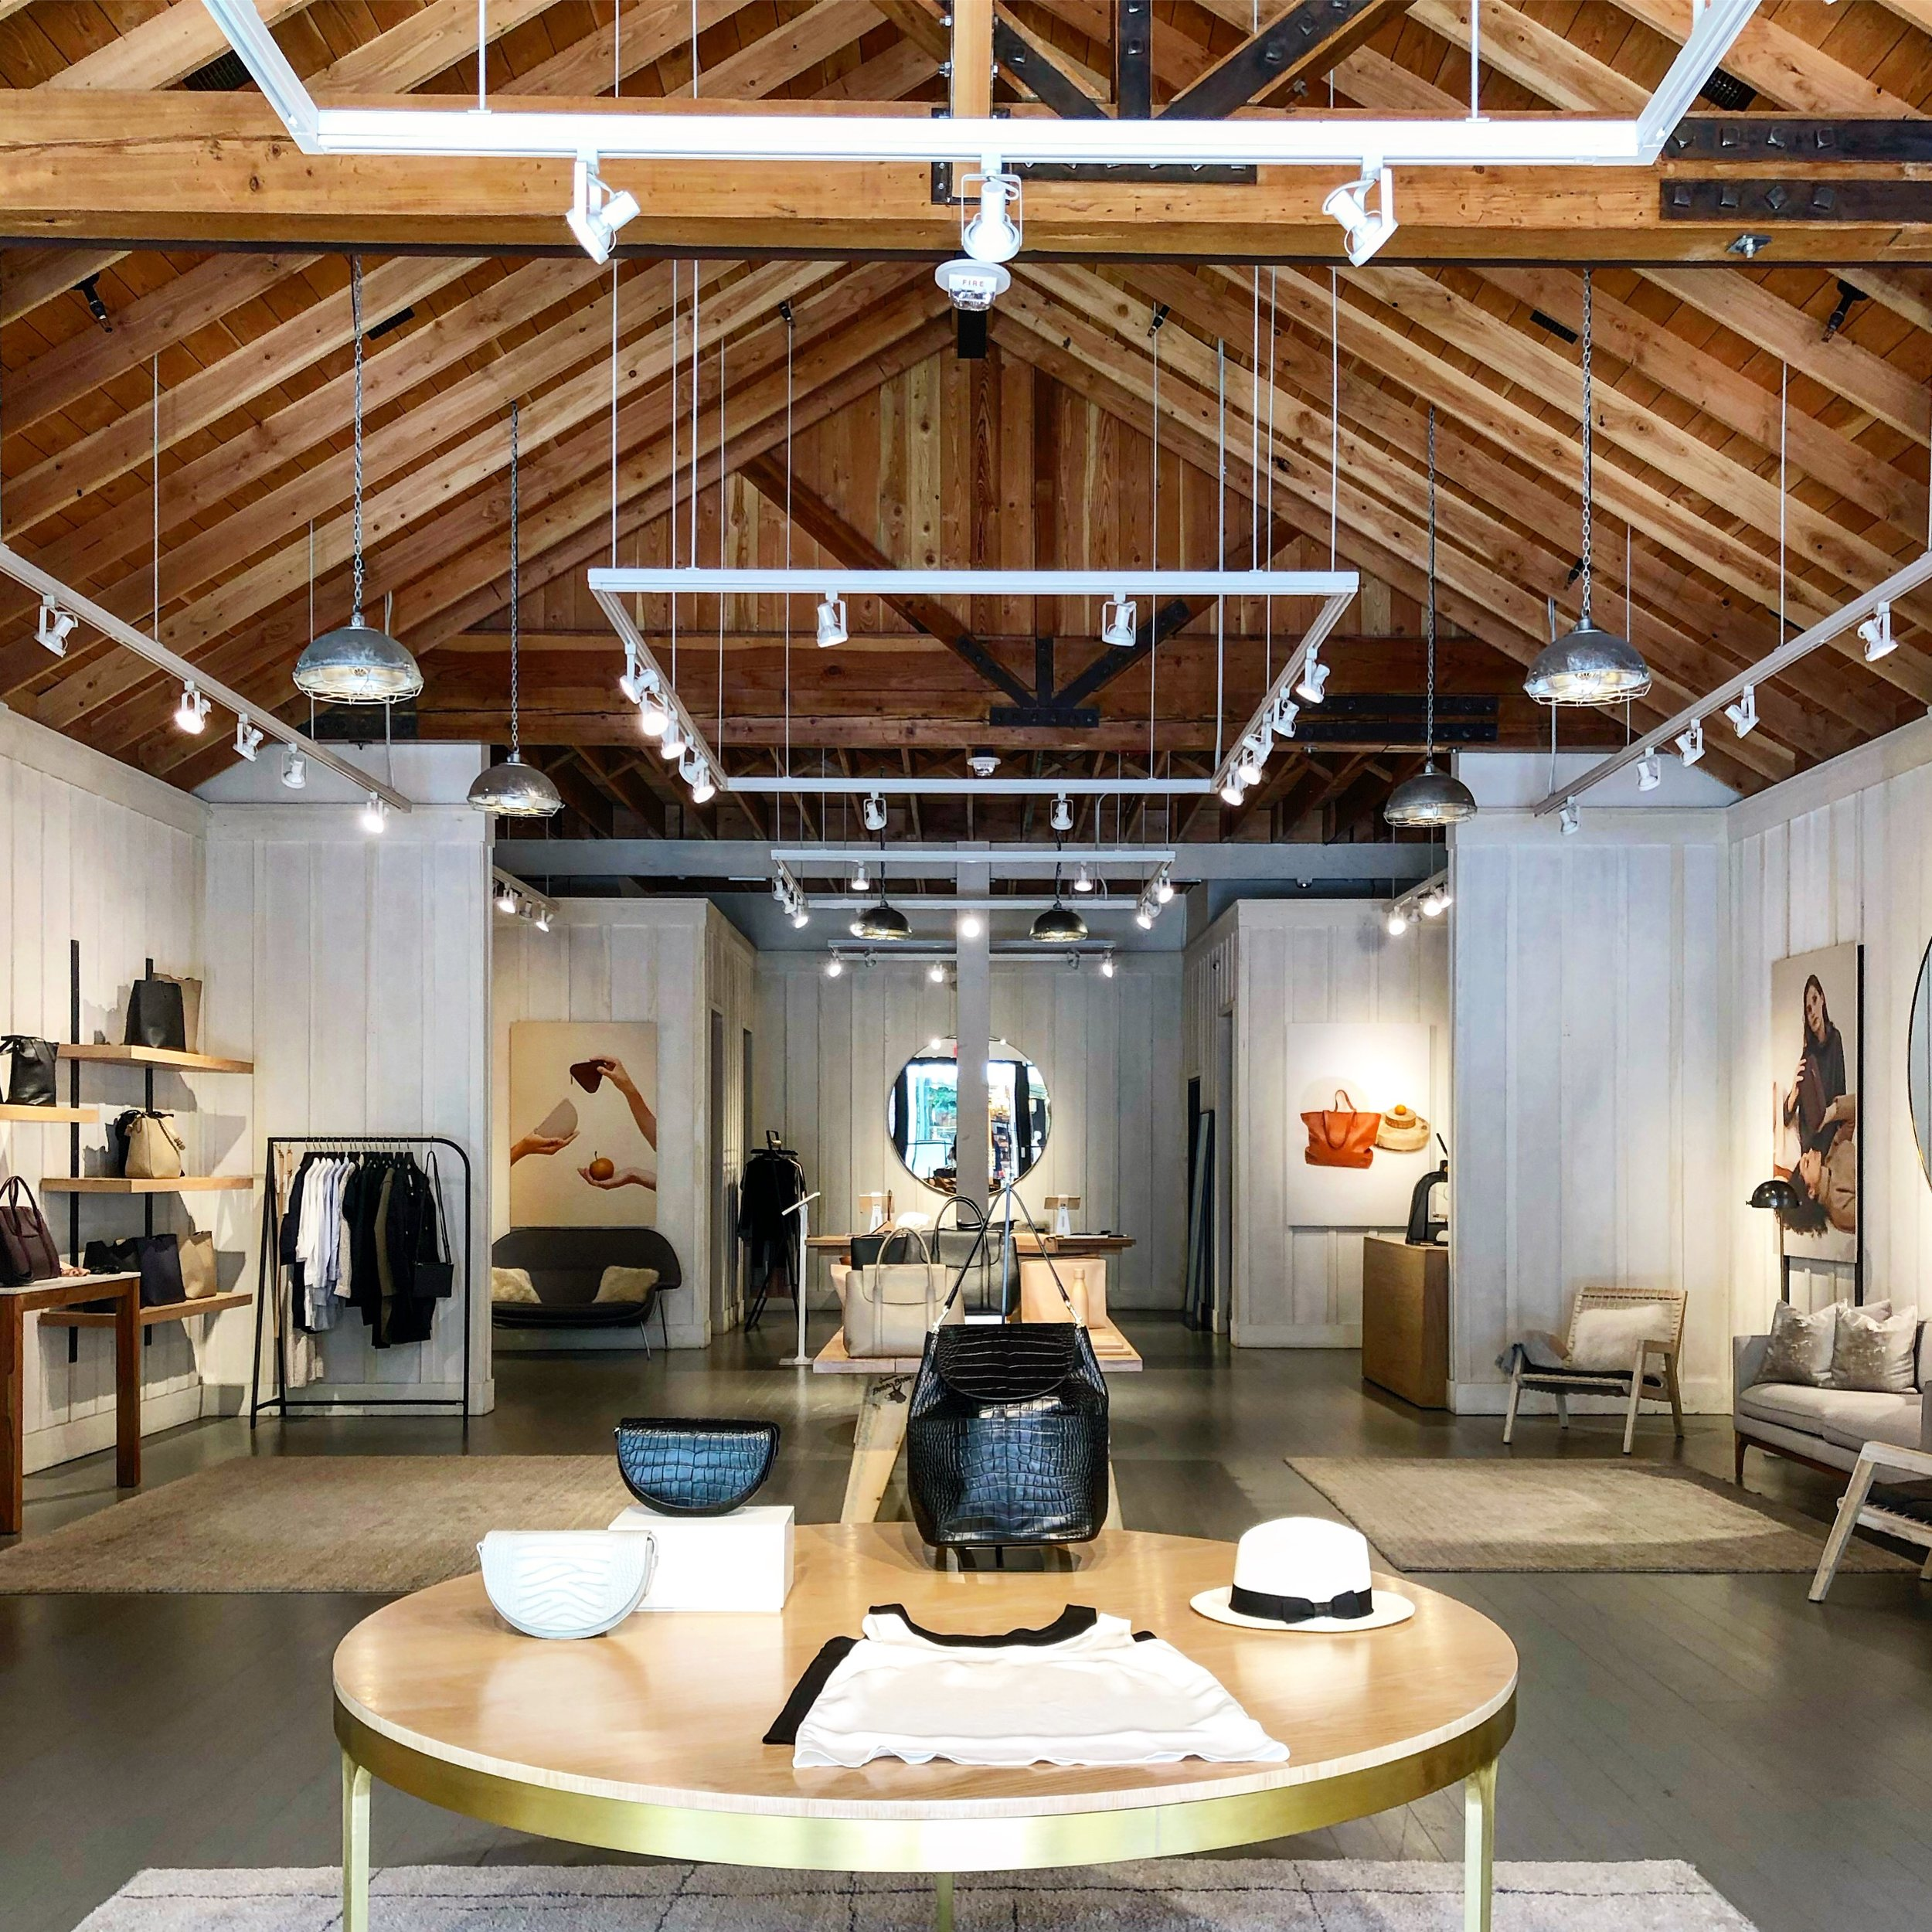 Cuyana's pop-up store in Palo Alto, Calif.